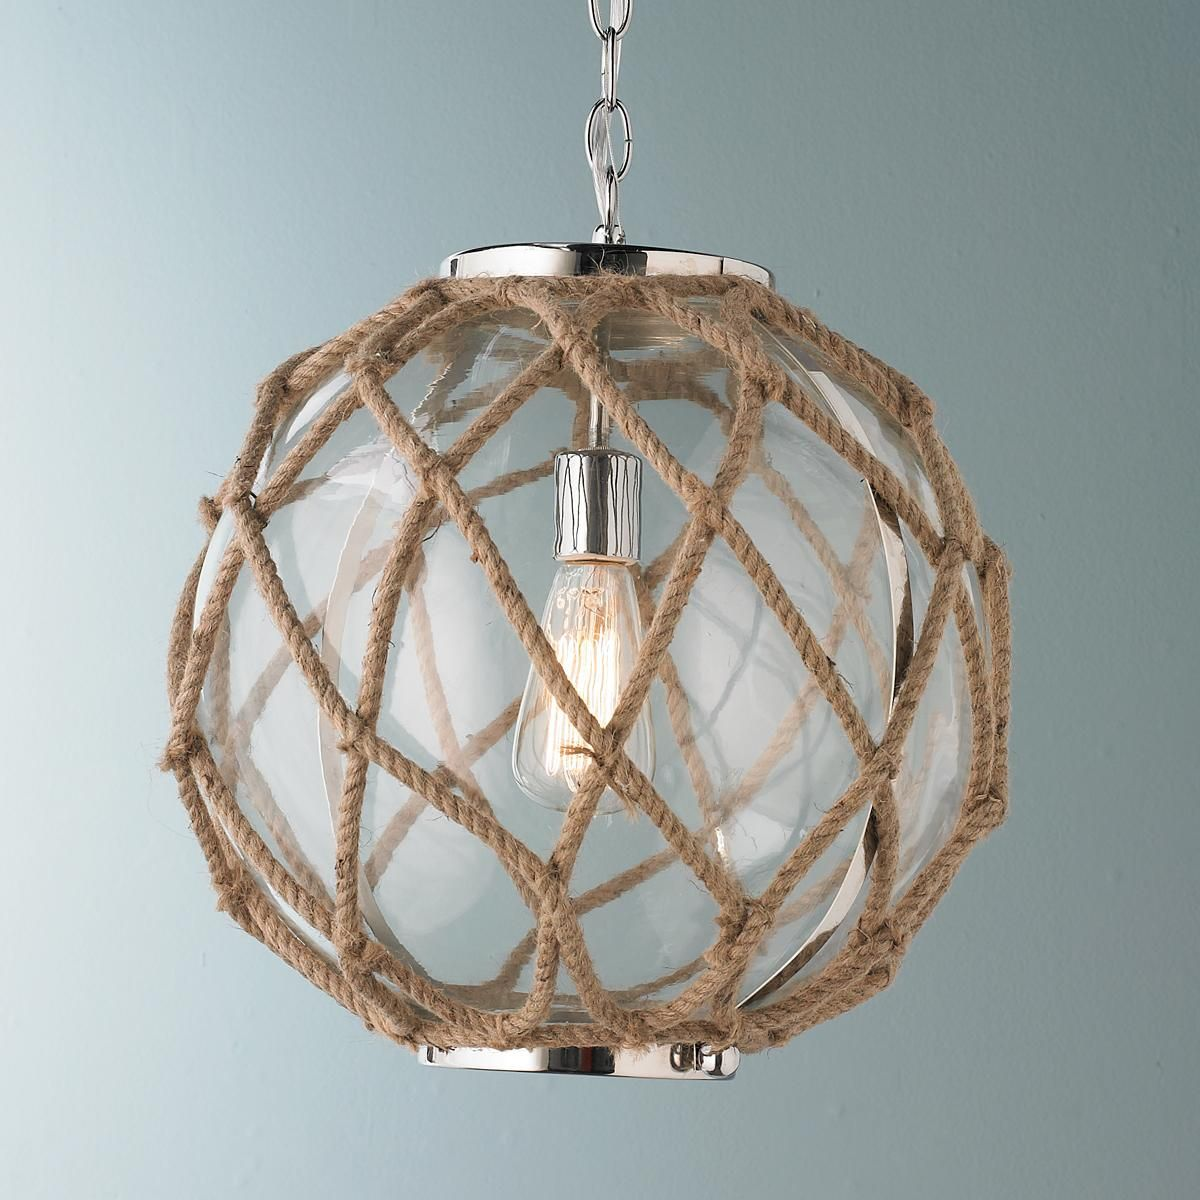 nautical hanging lights nautical themed jute rope nautical pendant glass bowls handwrapped with thick natural jute rope create this nautical style pendant chic coastal look for beach homes and